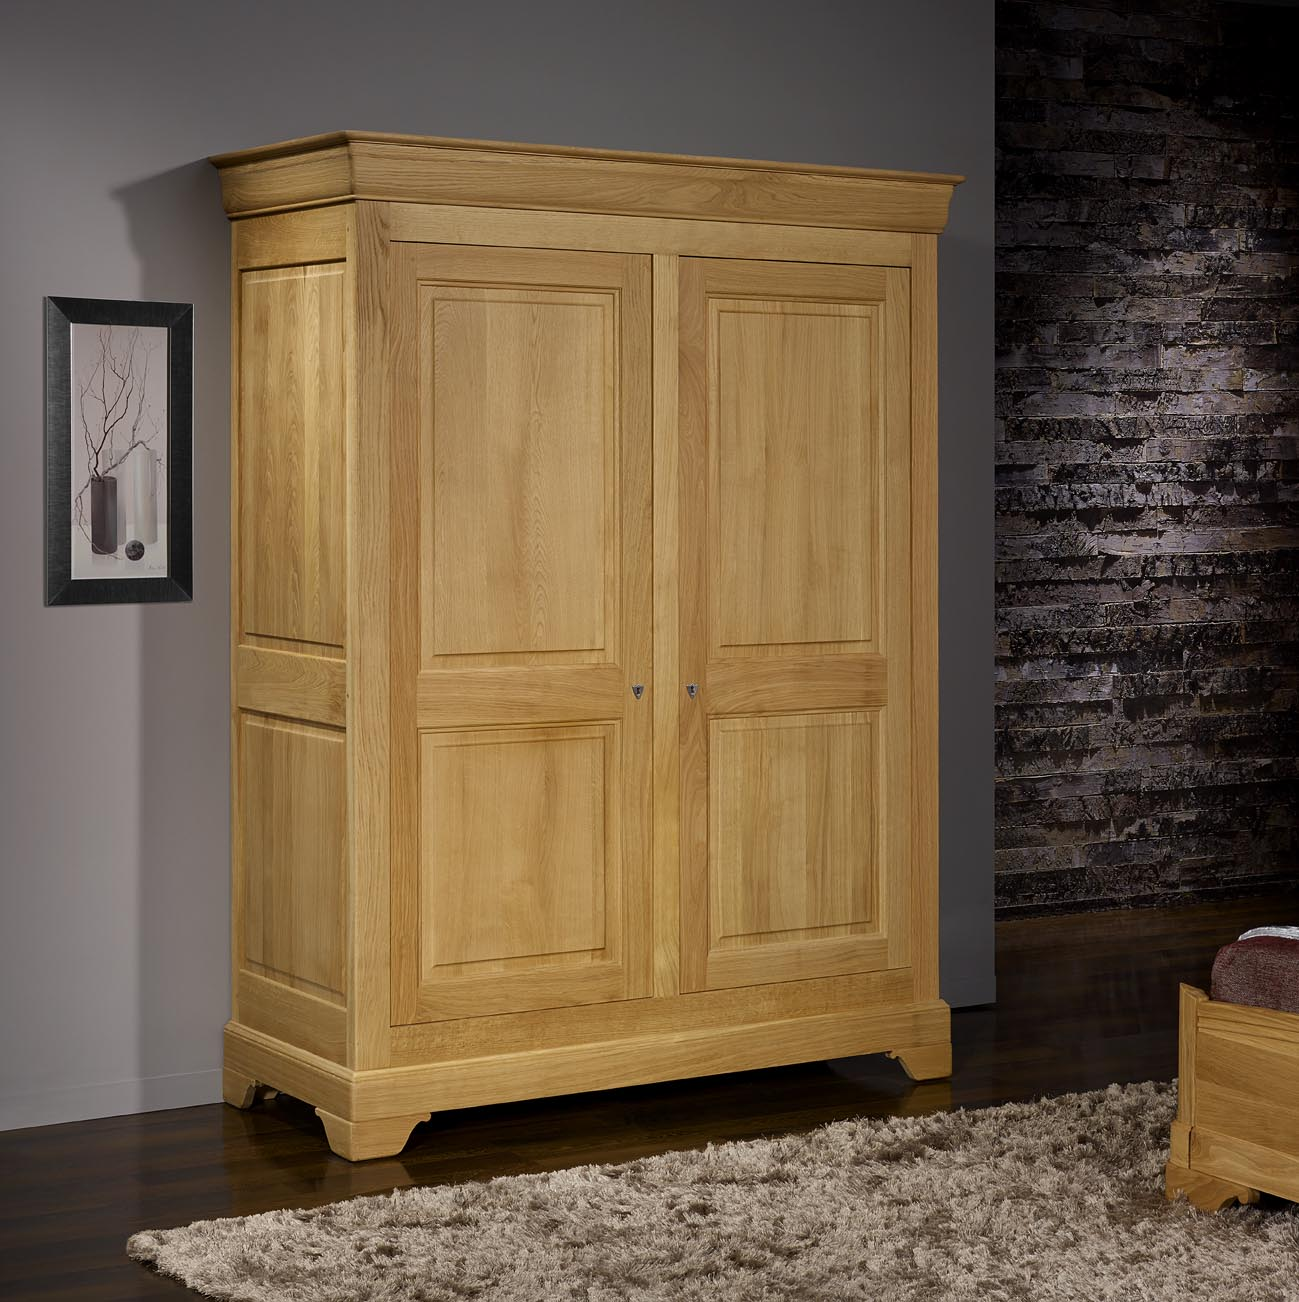 armoire 2 portes en ch ne massif de style louis philippe finition ch ne bross naturel meuble. Black Bedroom Furniture Sets. Home Design Ideas